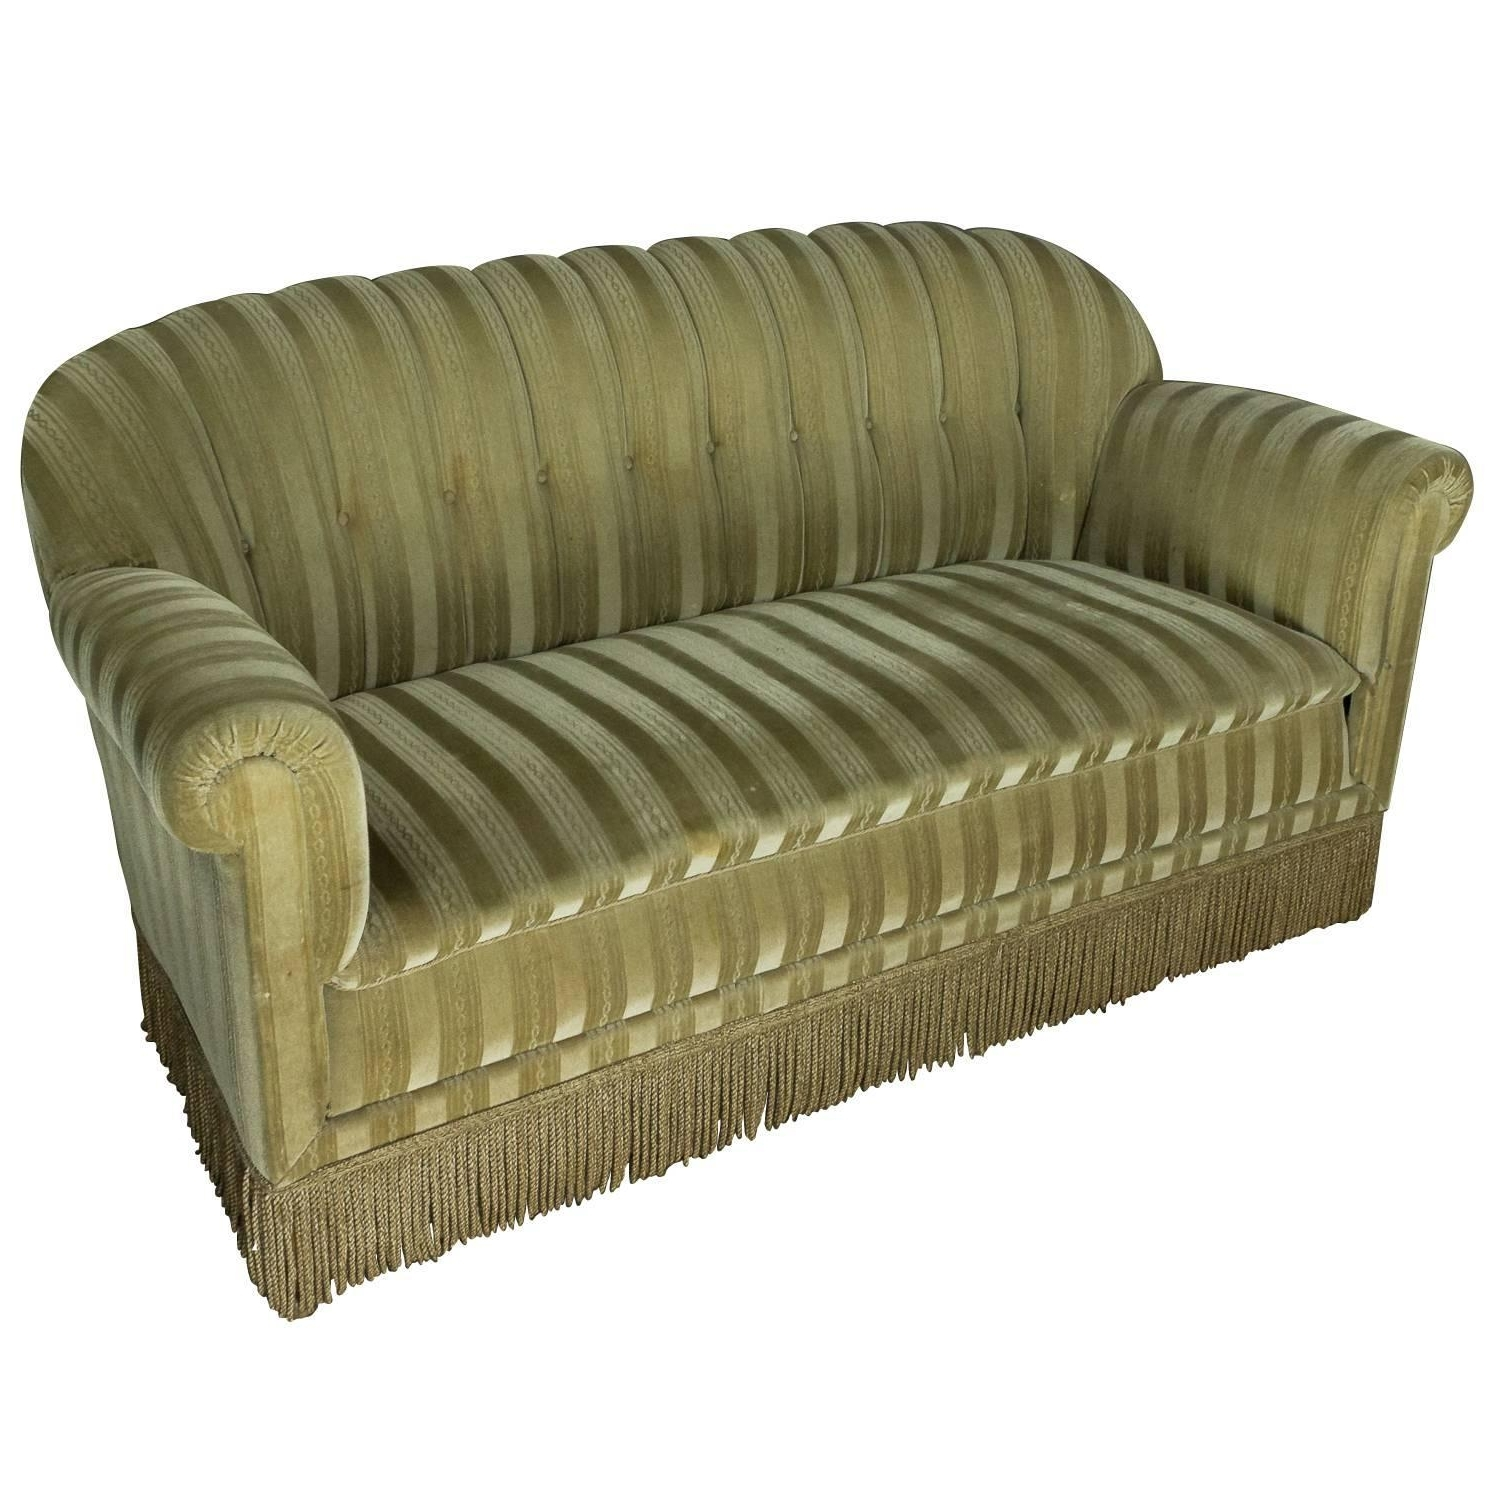 1930S Mohair Sofa At 1Stdibs With Regard To Most Popular 1930S Sofas (Gallery 1 of 15)